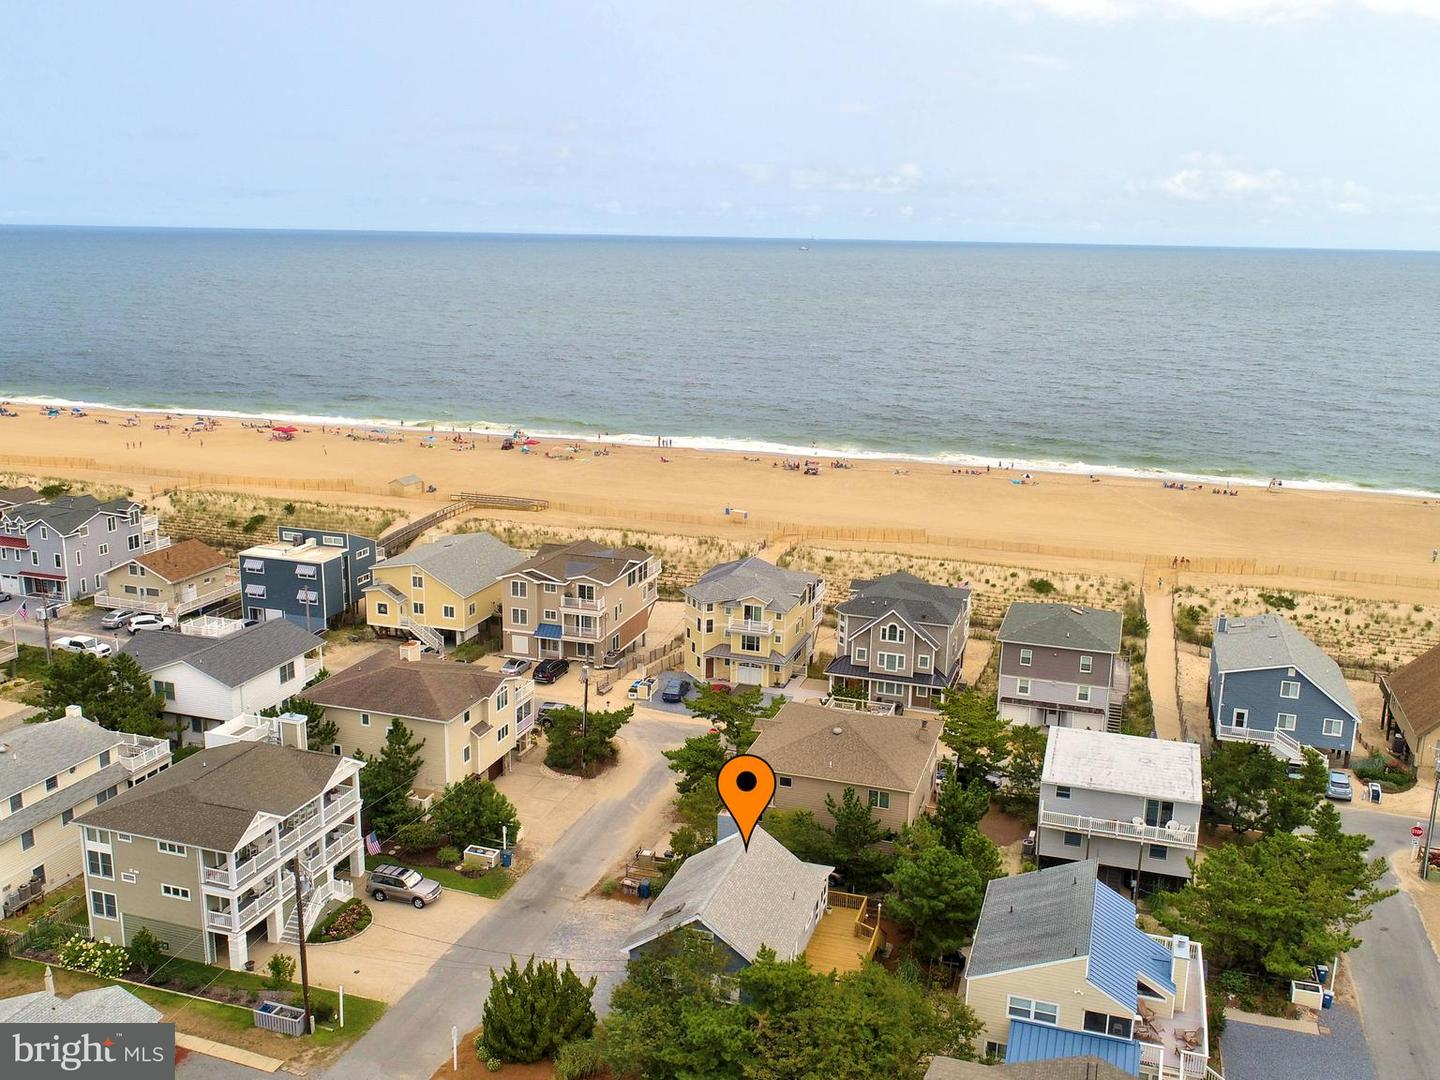 1002299338-300501703083-2018-08-30-10-08-41 4 S 4th St | South Bethany, De Real Estate For Sale | MLS# 1002299338  - Suzanne Macnab